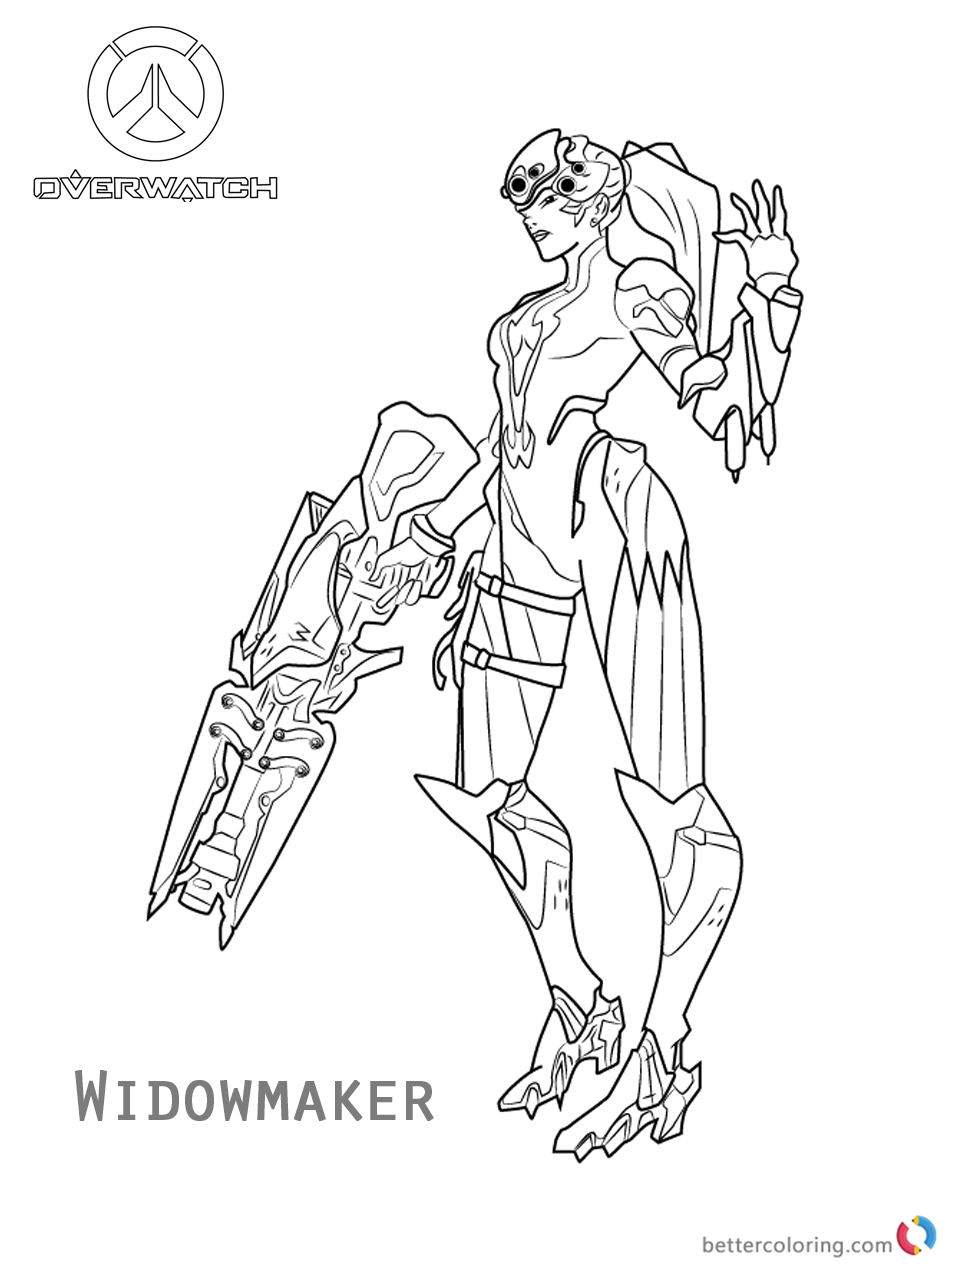 Widowmaker from Overwatch Coloring Pages - Free Printable Coloring Pages